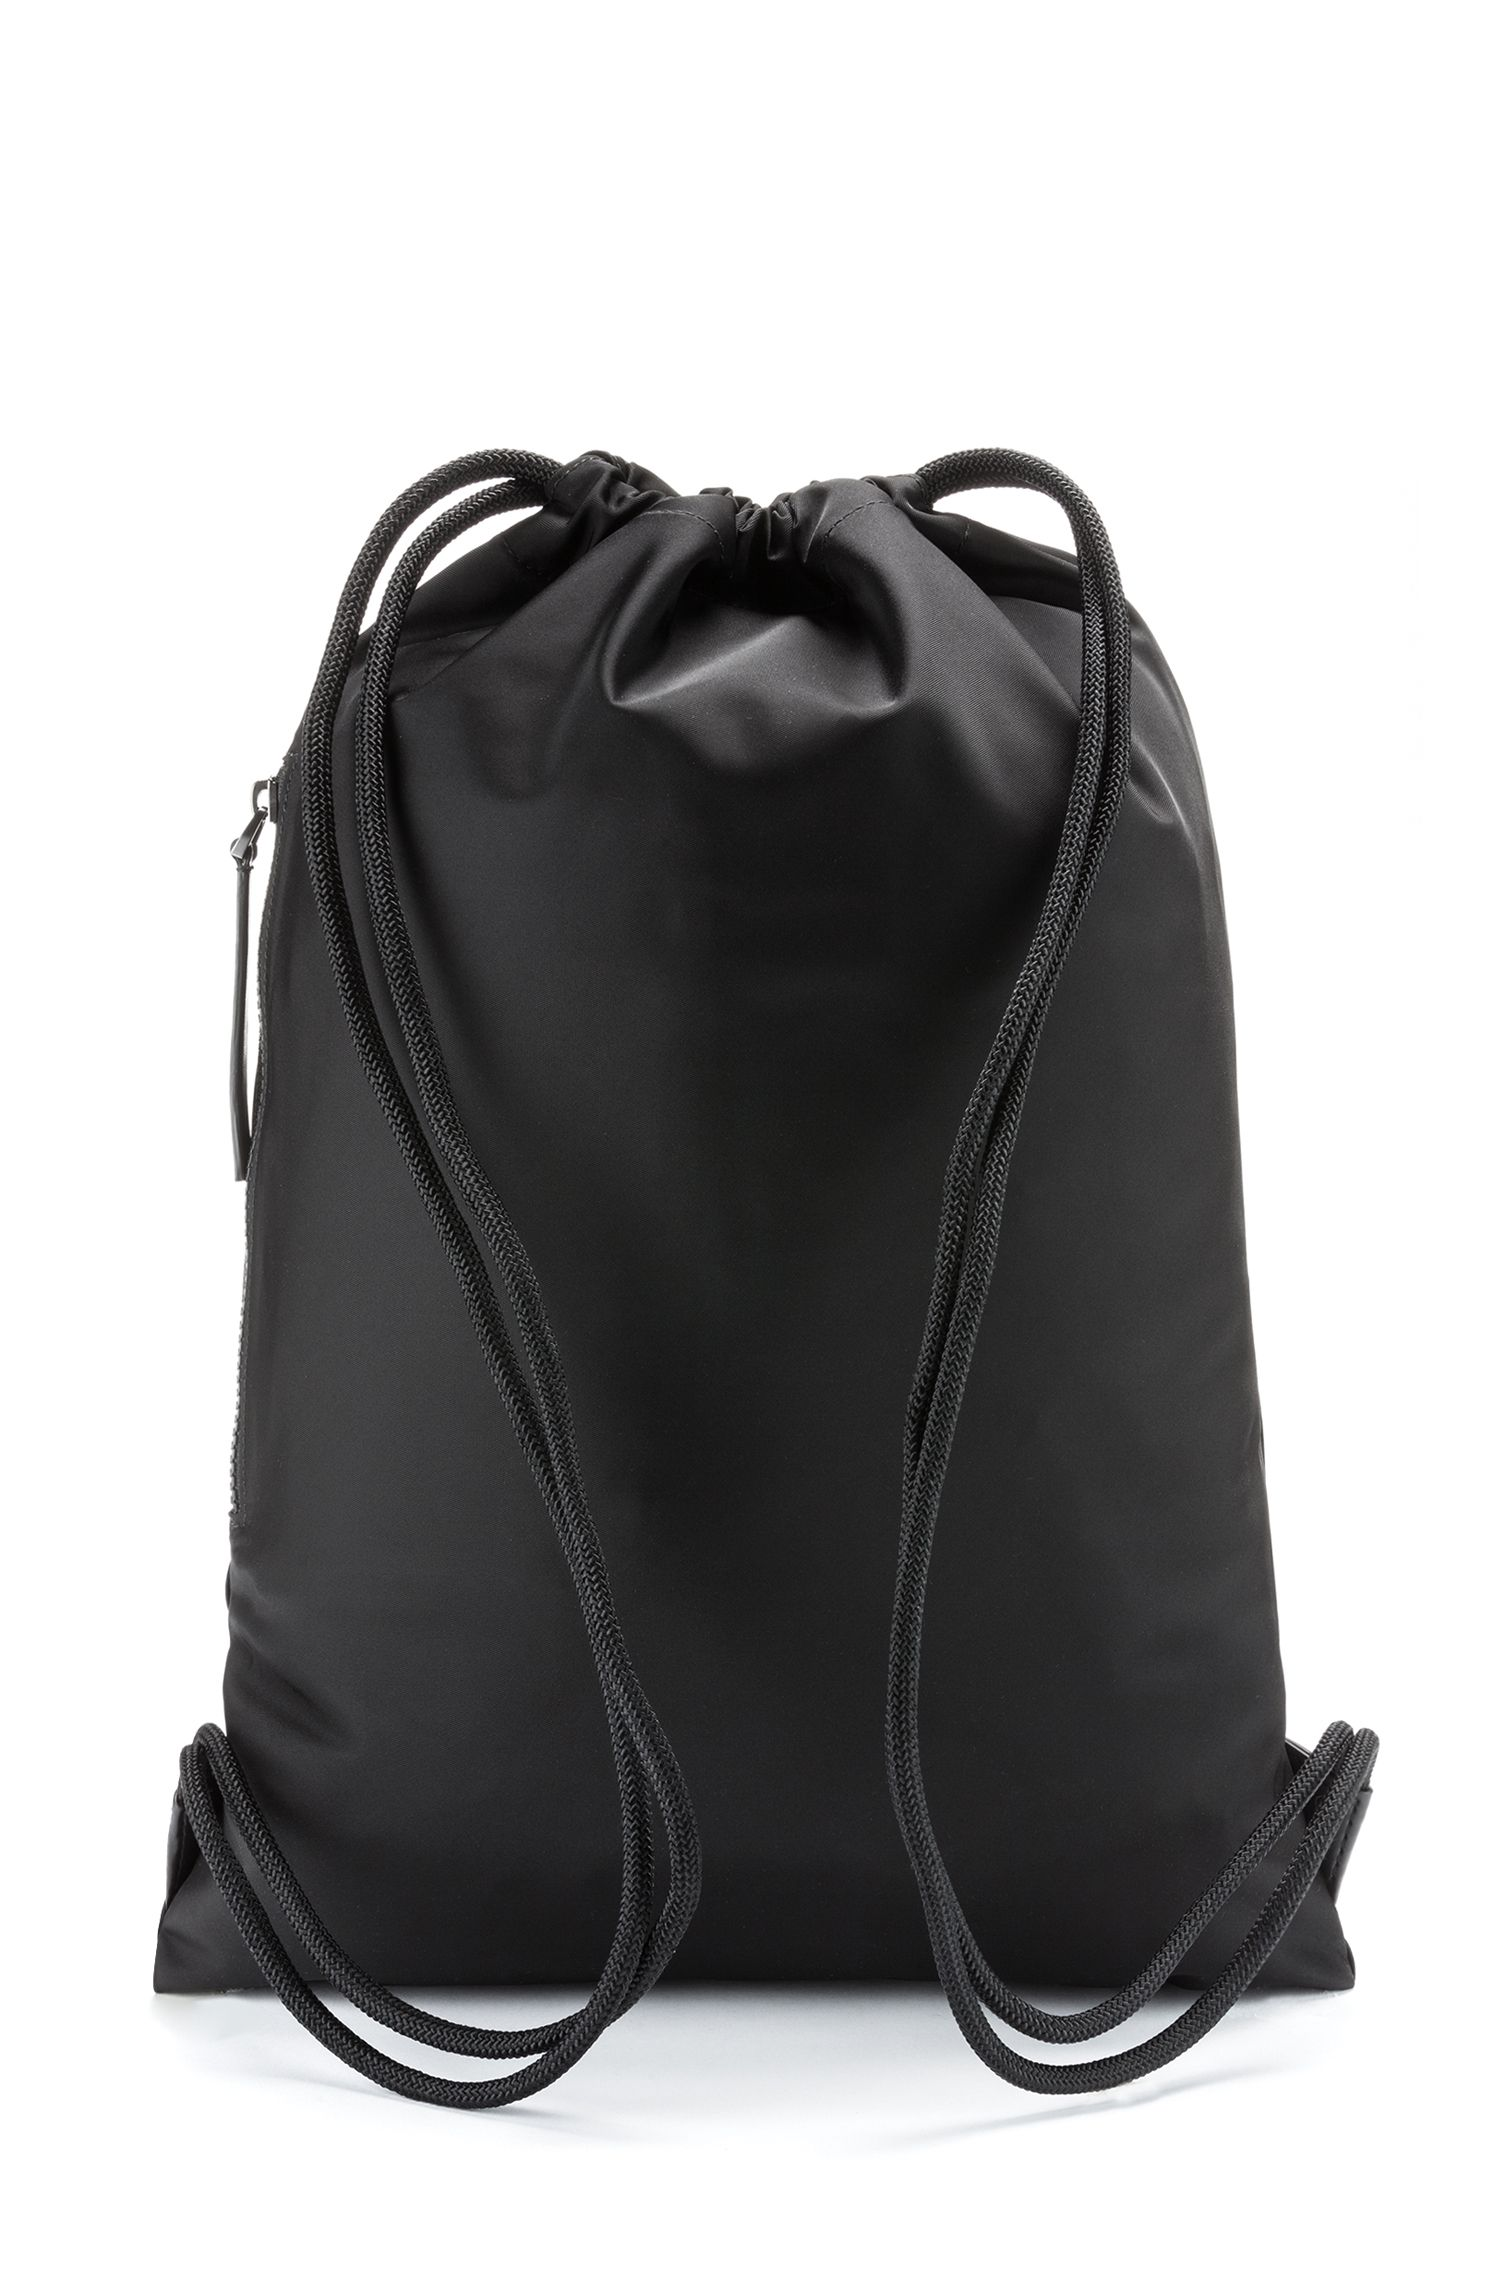 Drawstring backpack in nylon gabardine with reverse-logo print, Black